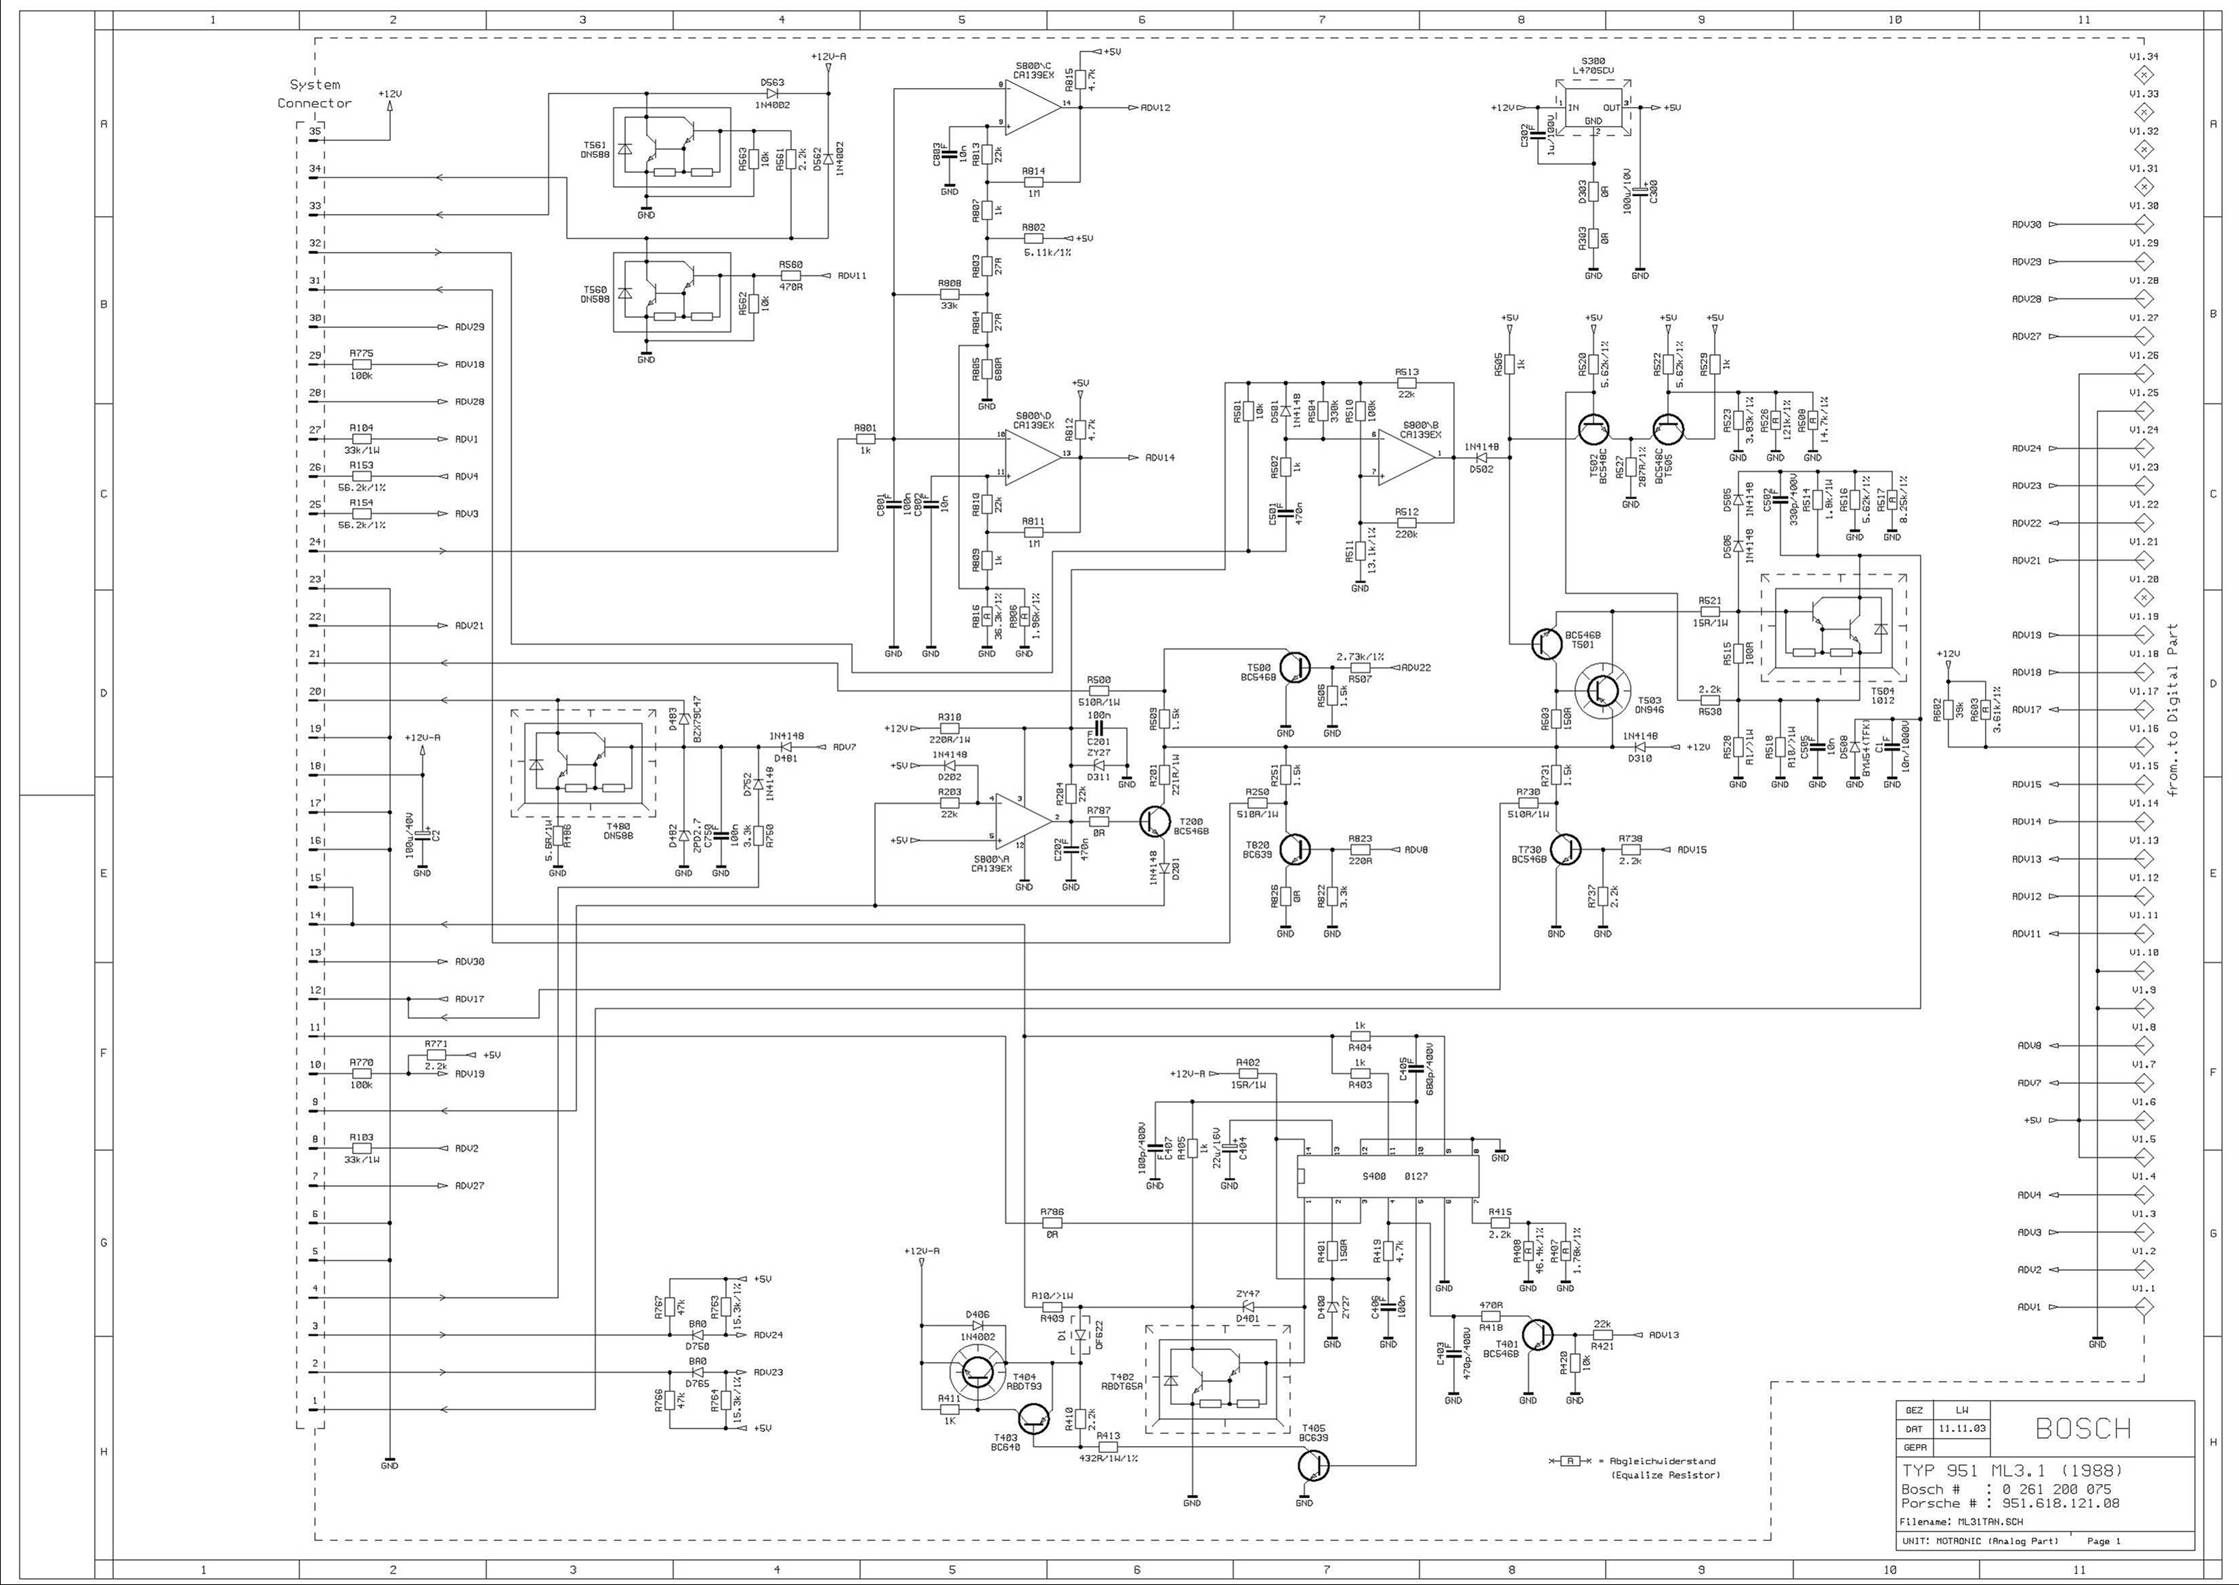 944tdme a dme wiring diagram 944 turbo shop wiring diagrams at fashall.co